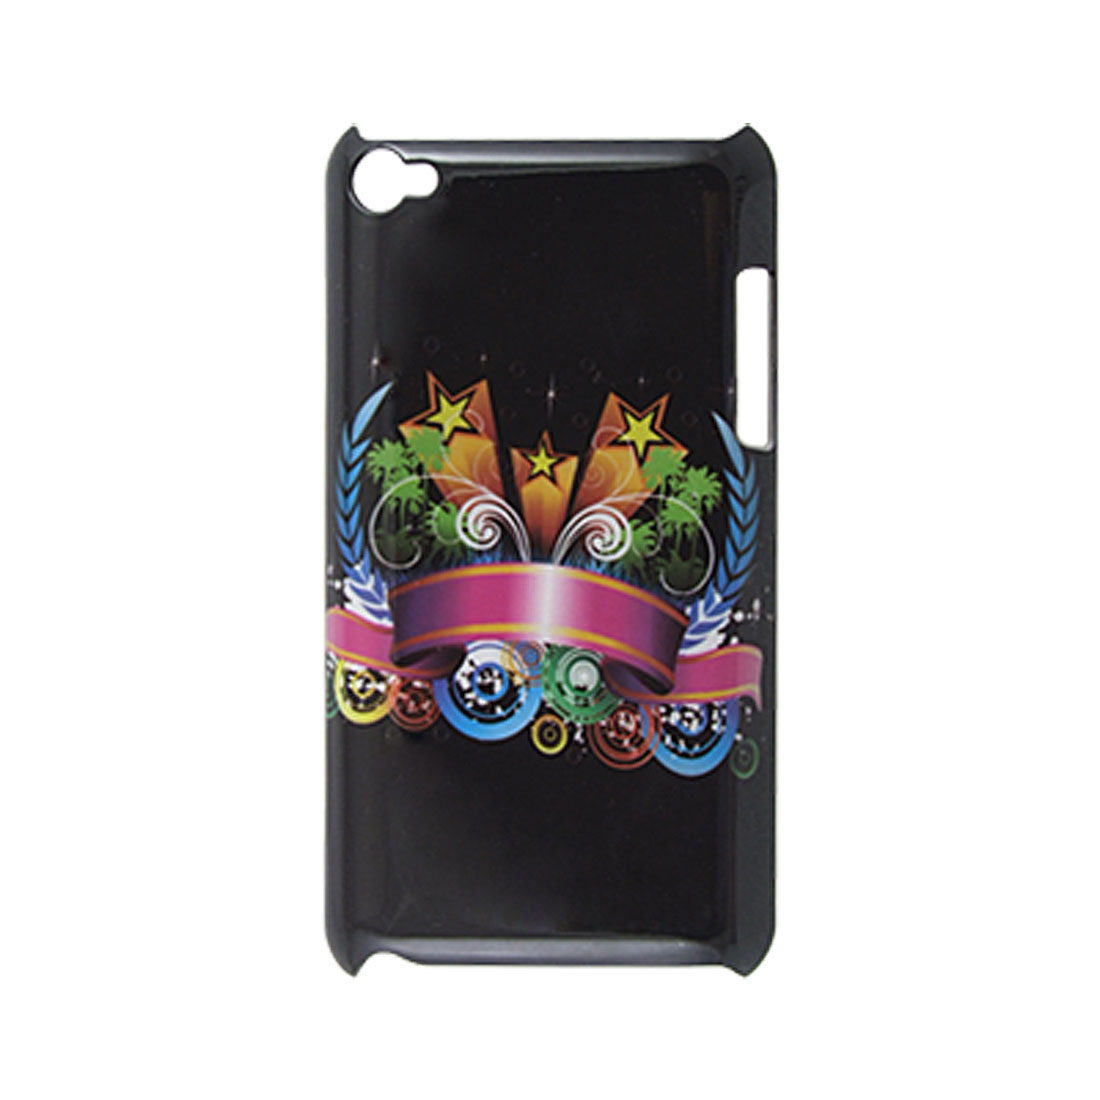 Star Tree Ribbon Hard Plastic Back Case Black for iPod Touch 4G